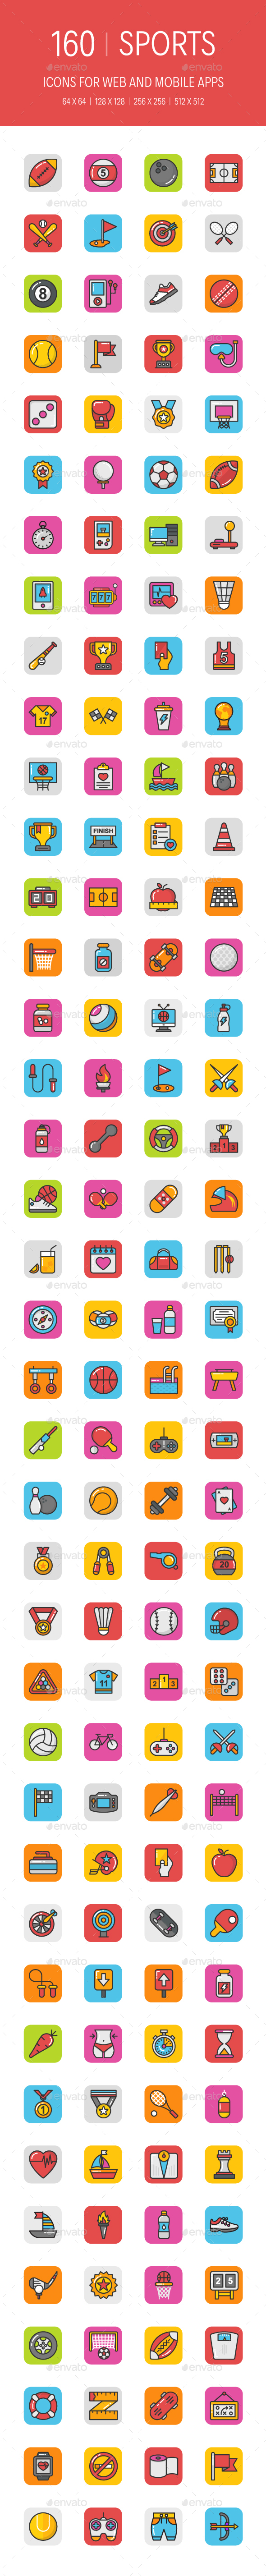 GraphicRiver 160 Sports and Games Icons 20947711